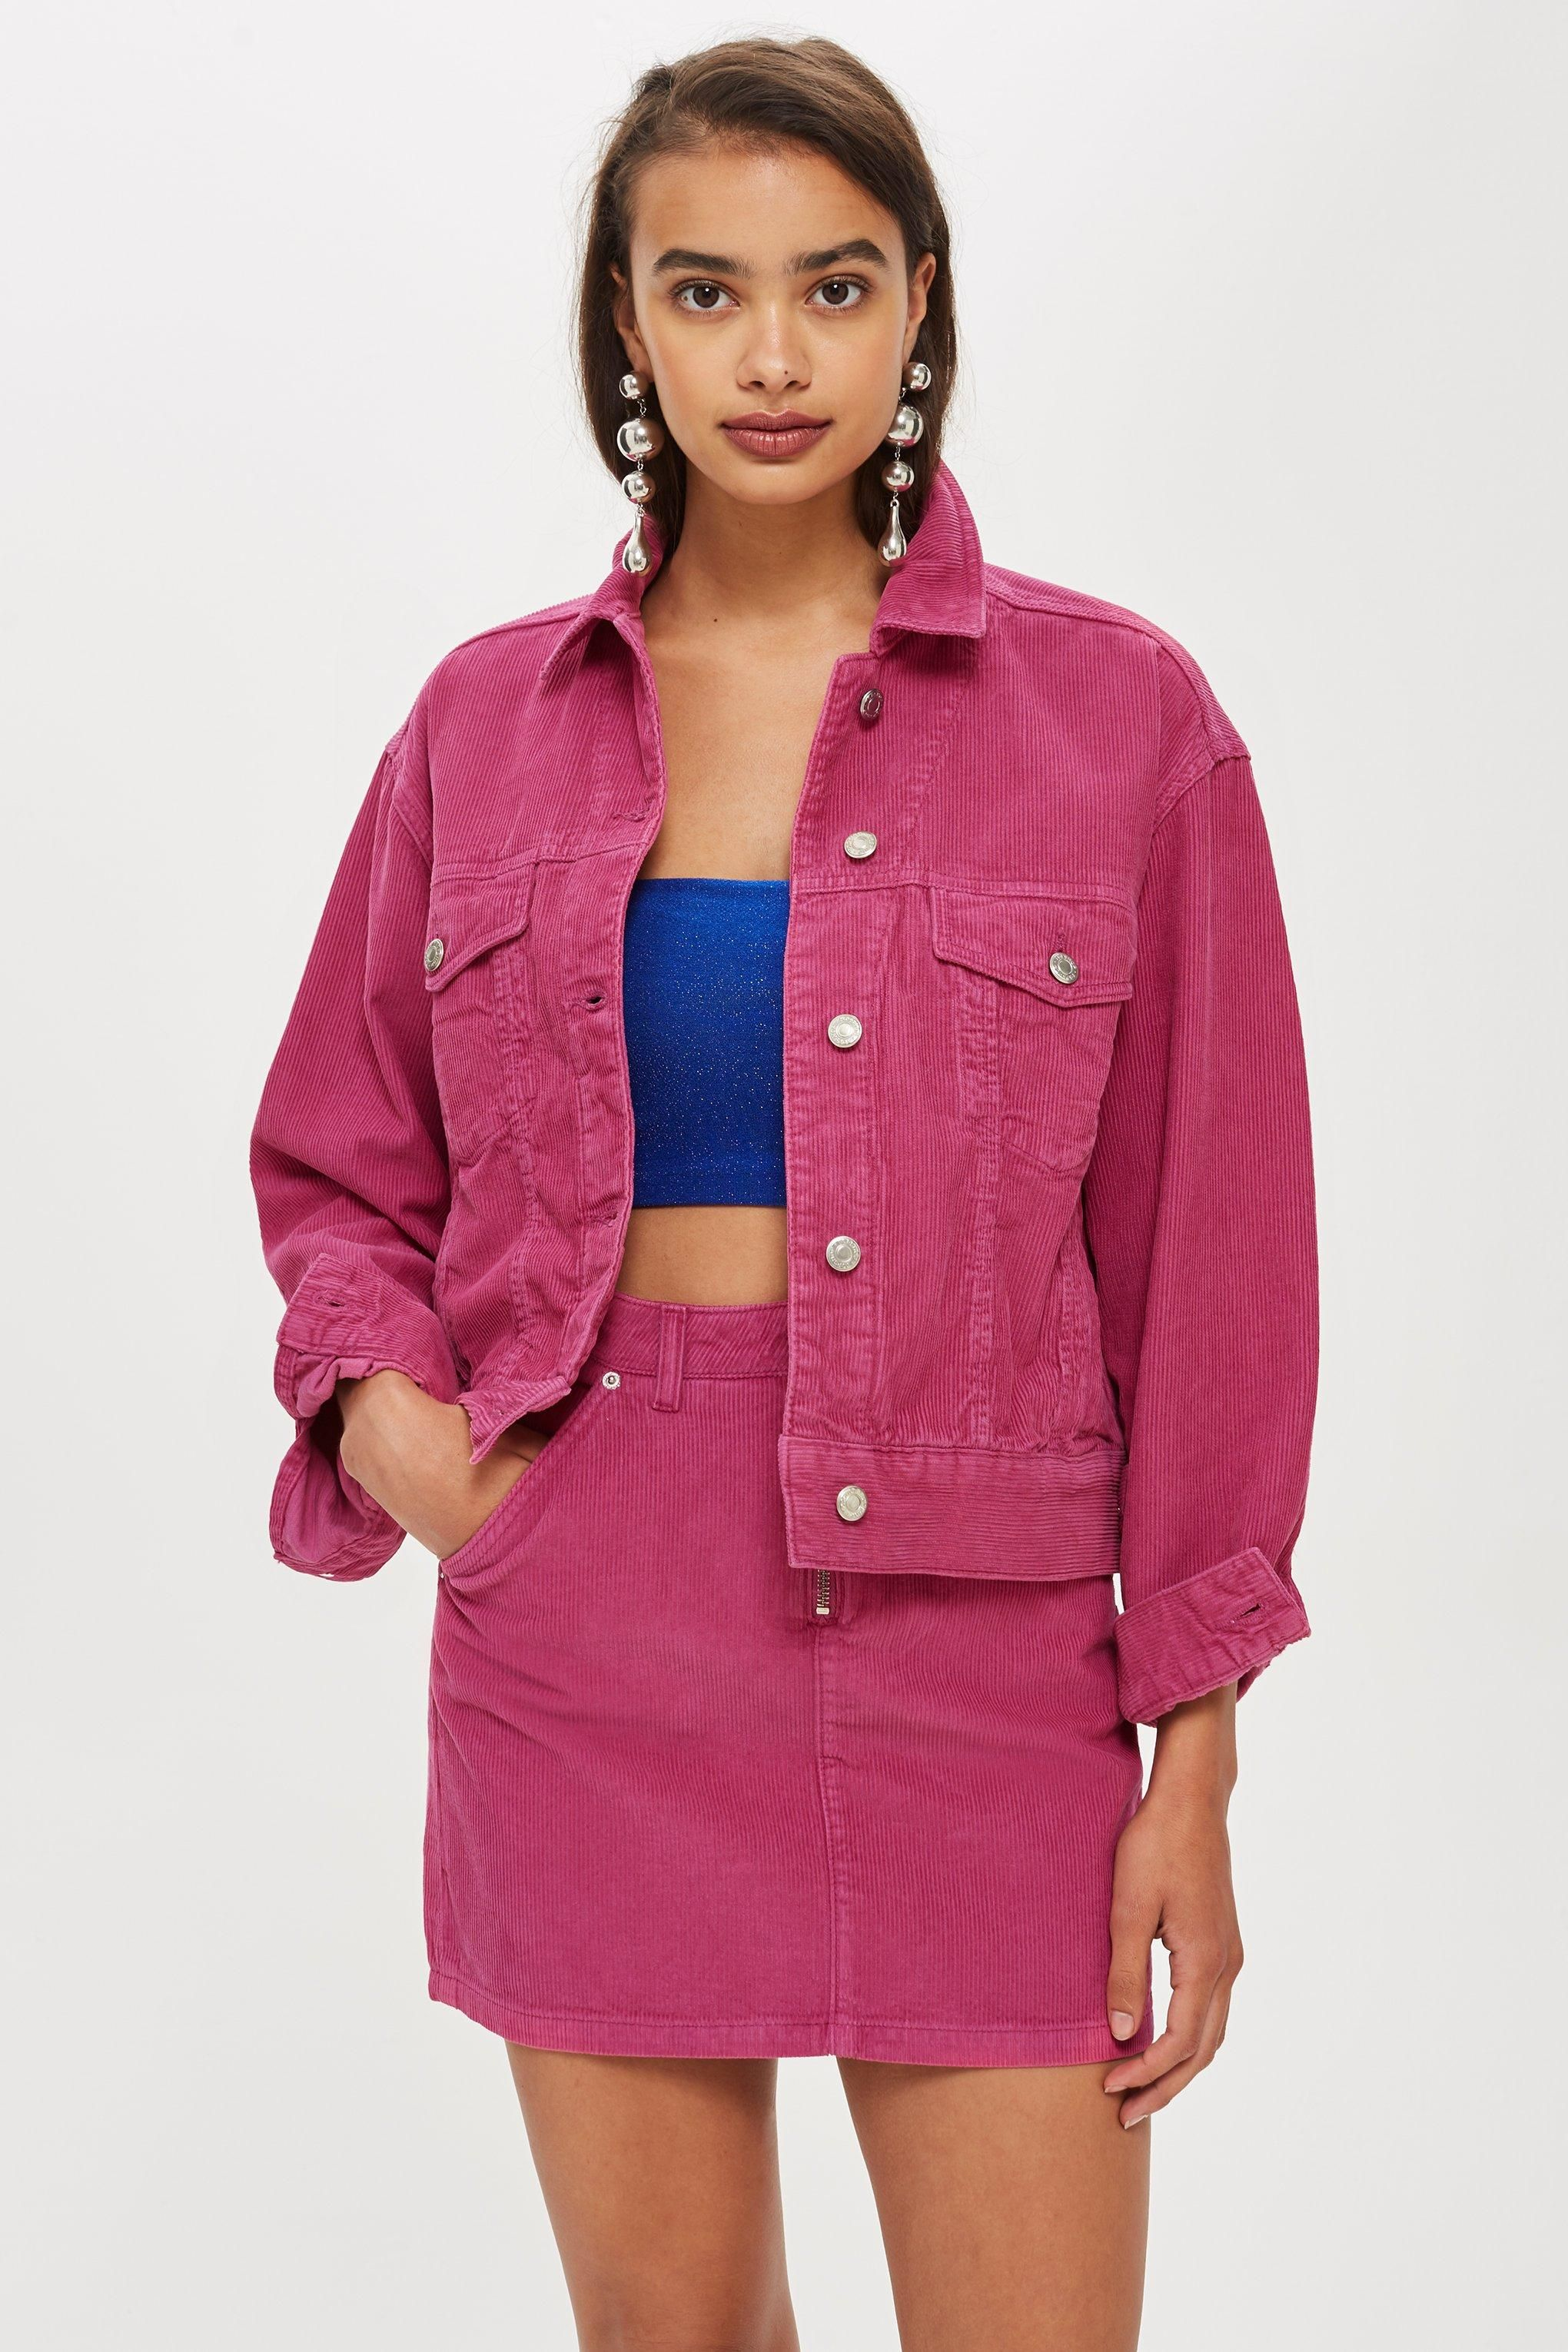 d2a6238861fb Pink Corduroy Co-ord Set - Denim - Clothing - Topshop USA #fashion #trends  #winter #corduroy #fw18 #fashionweek